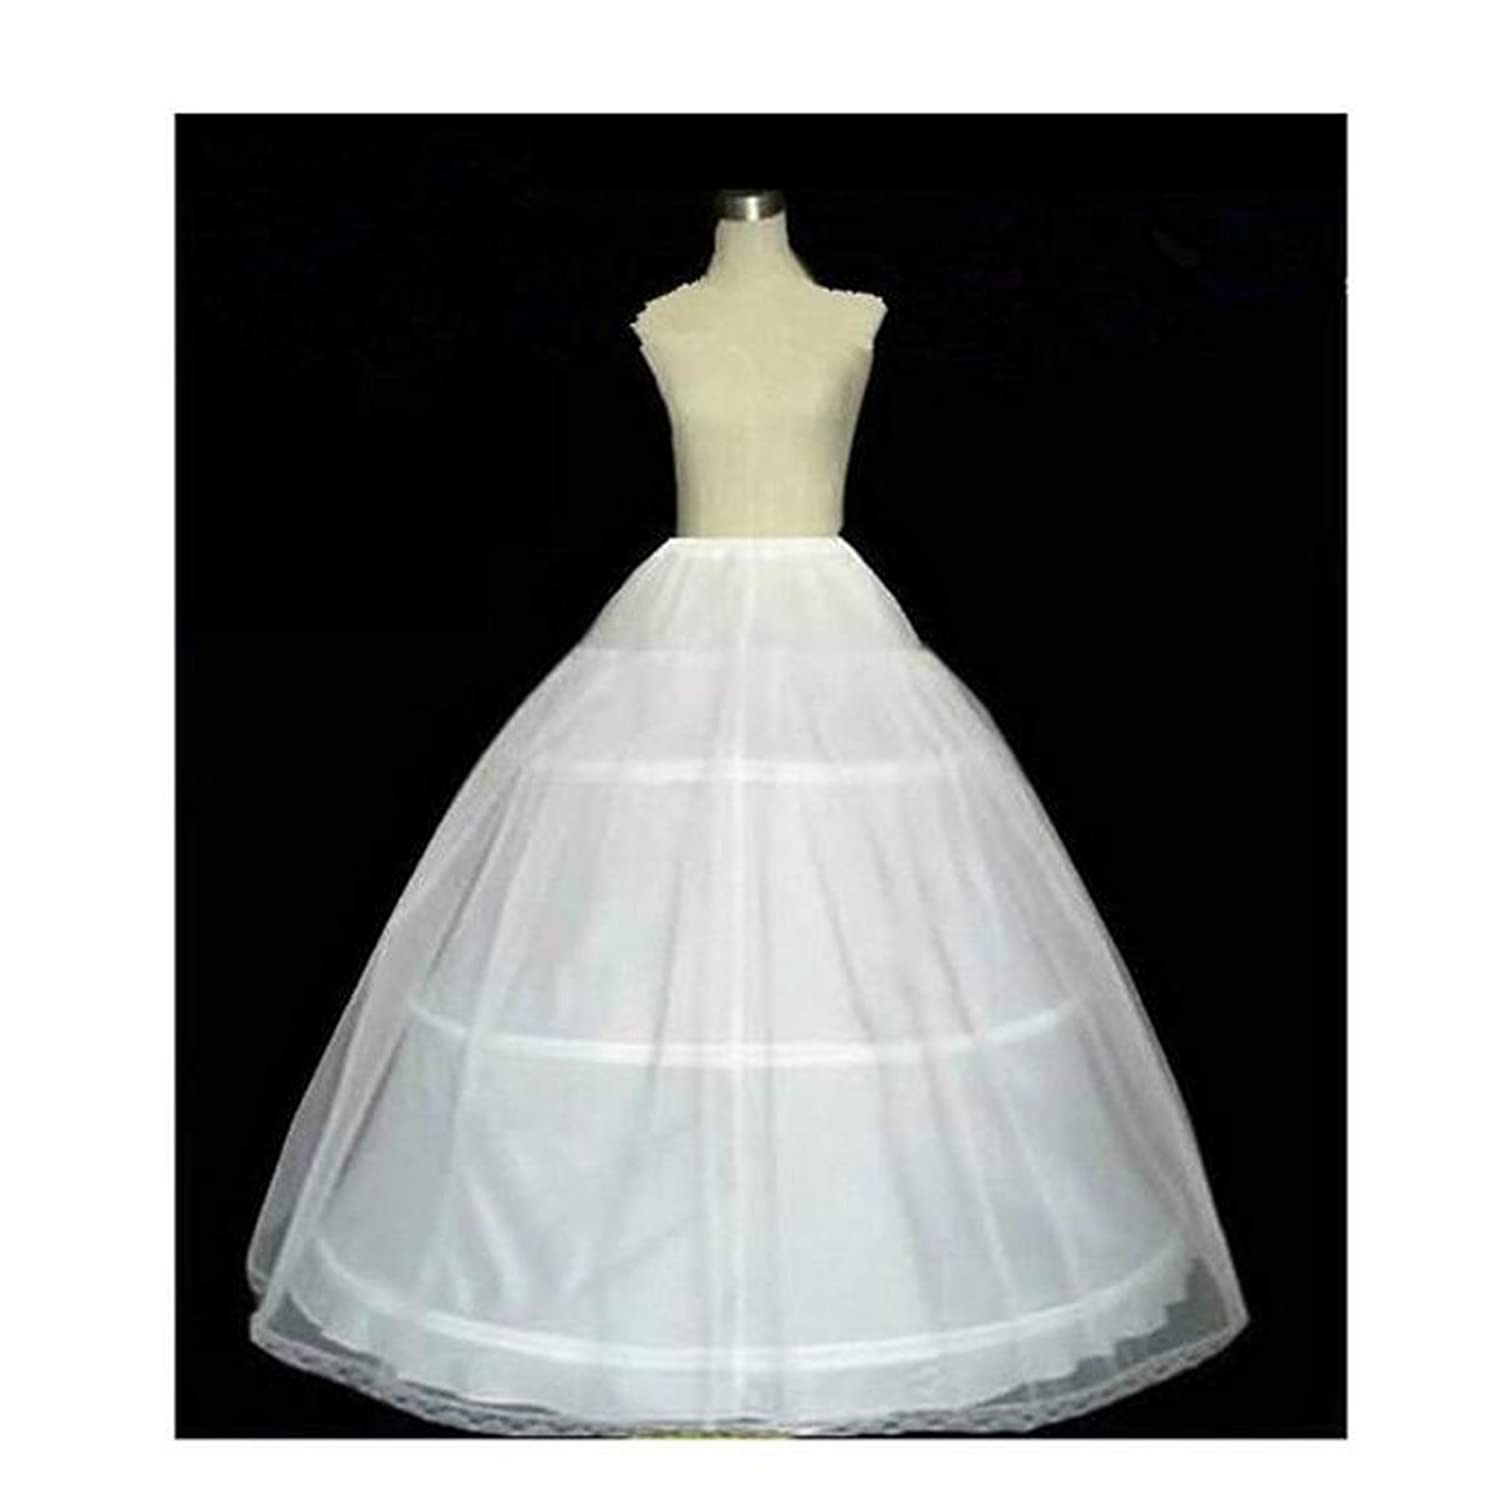 203e76ec27bf1 Fair Lady 3 Hoop Ball Gown Full Crinoline Petticoat For Women